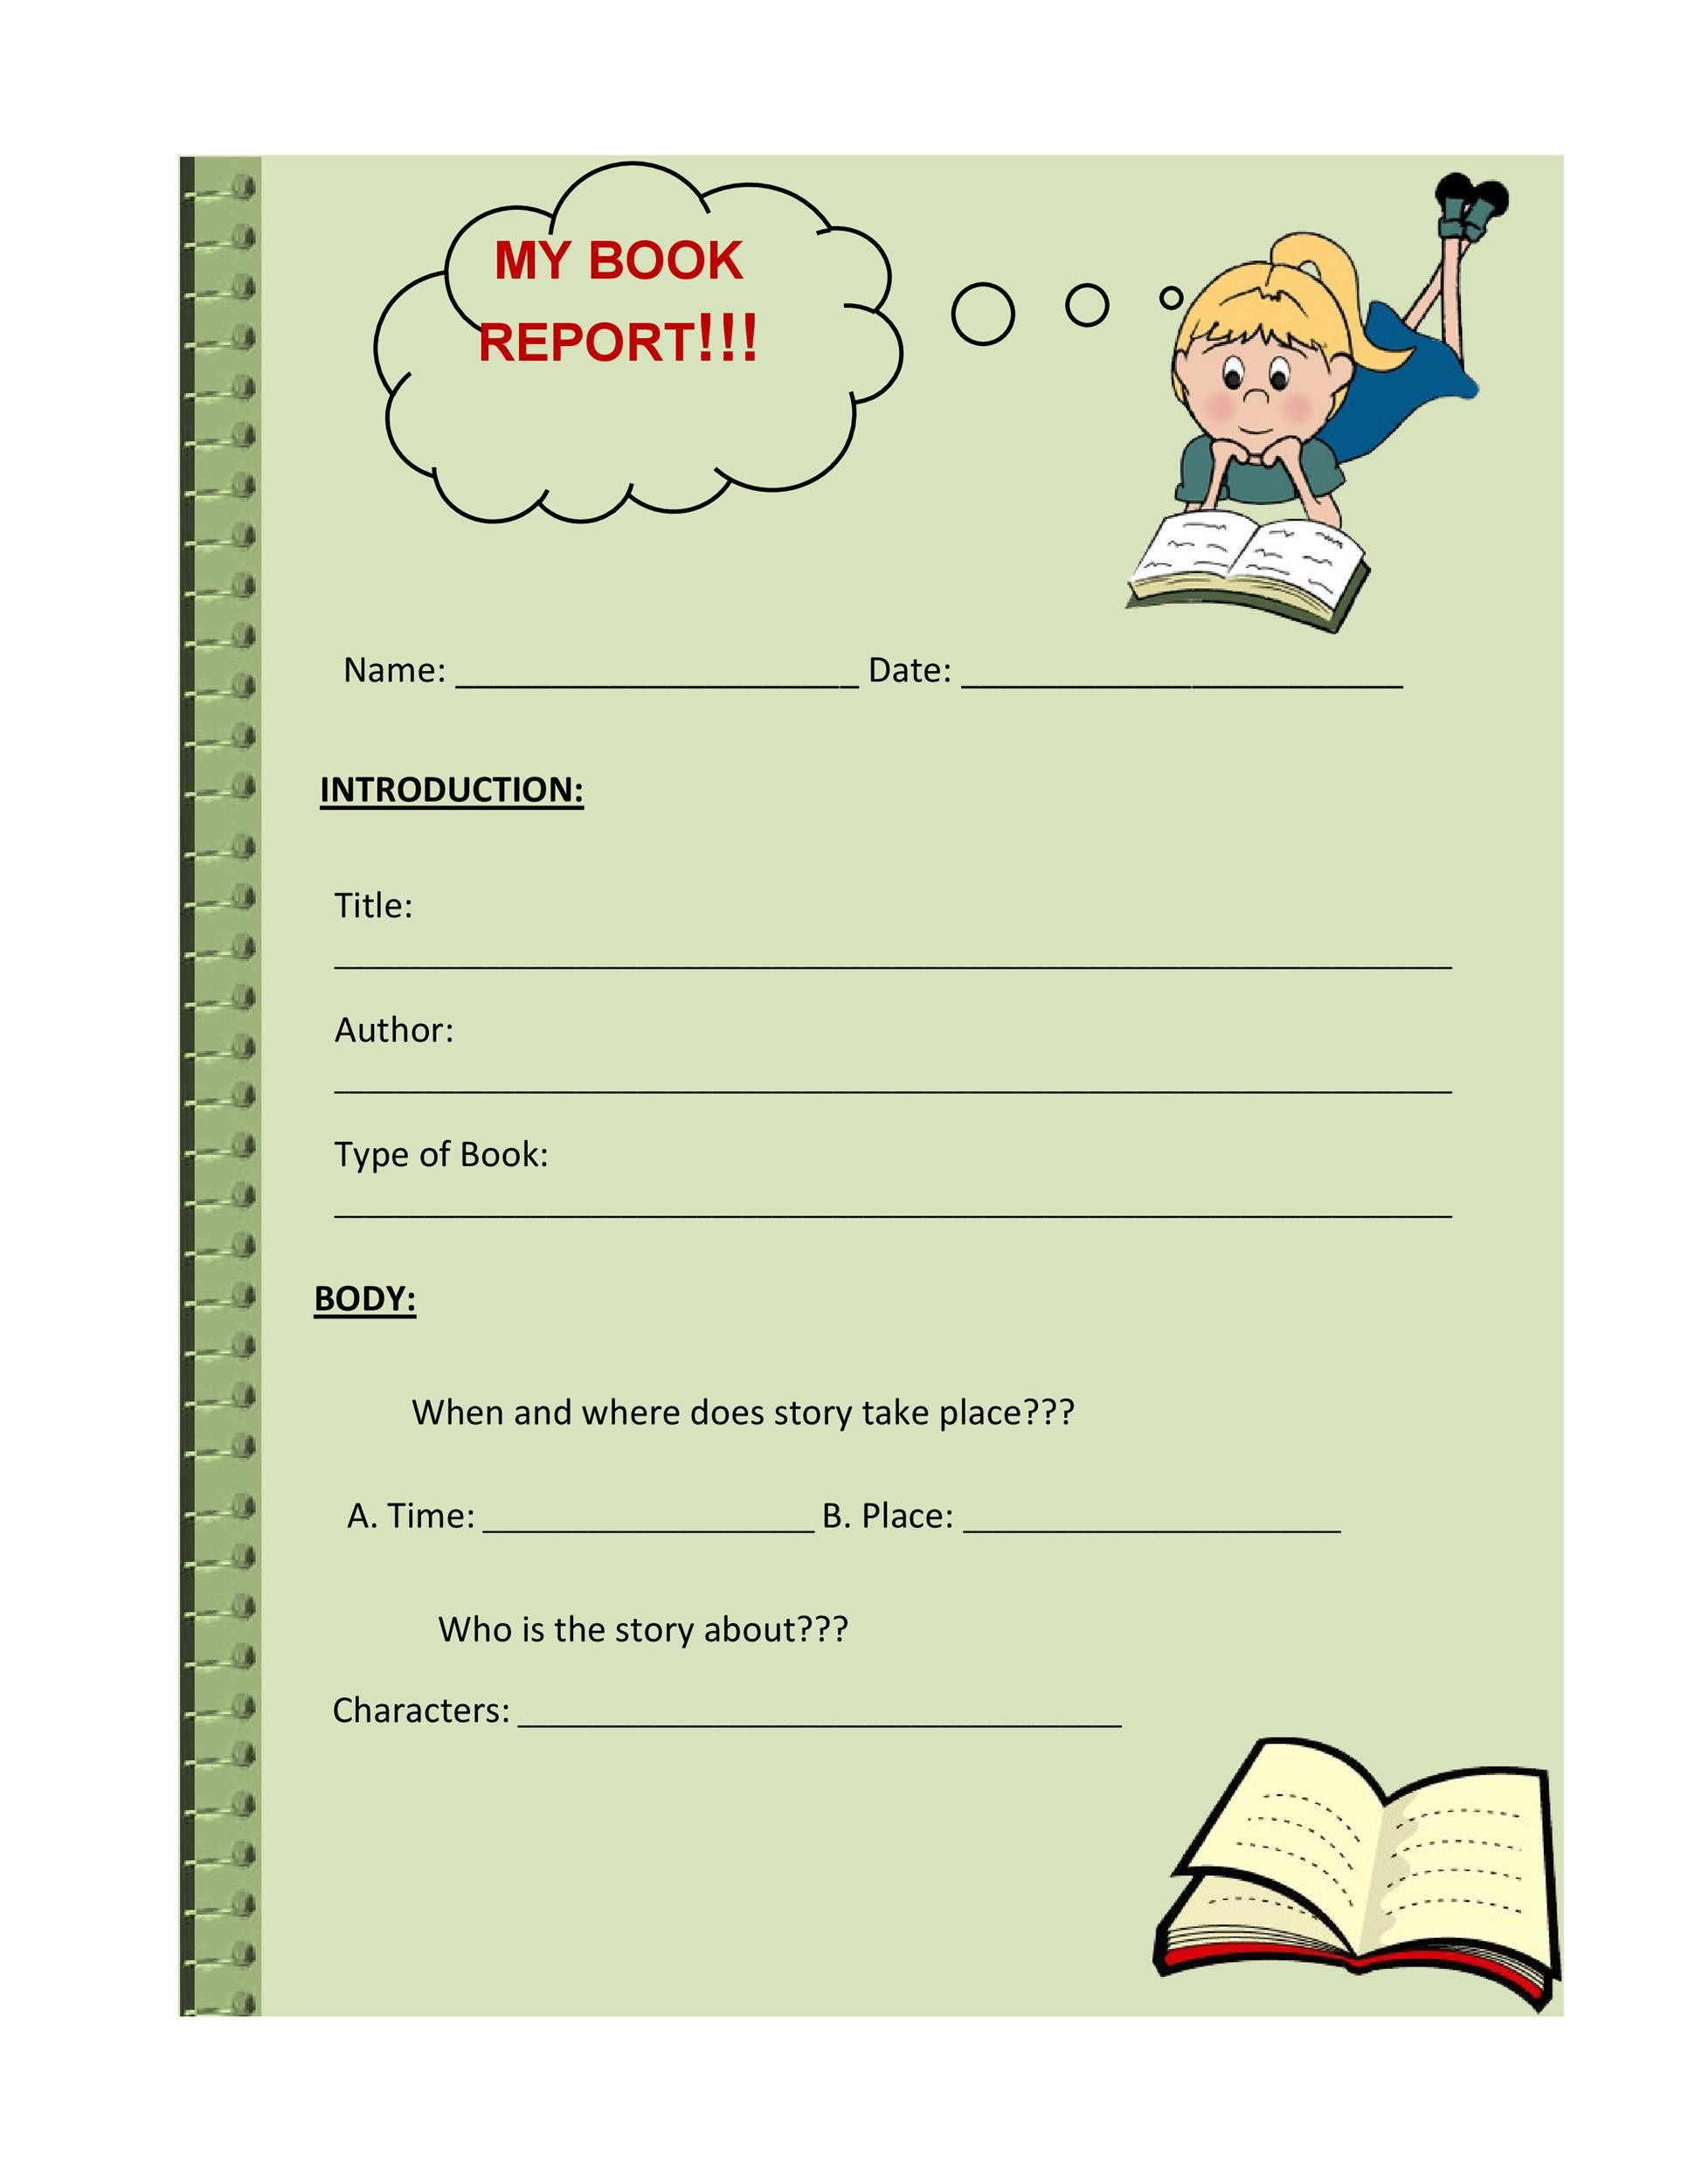 Format for book report